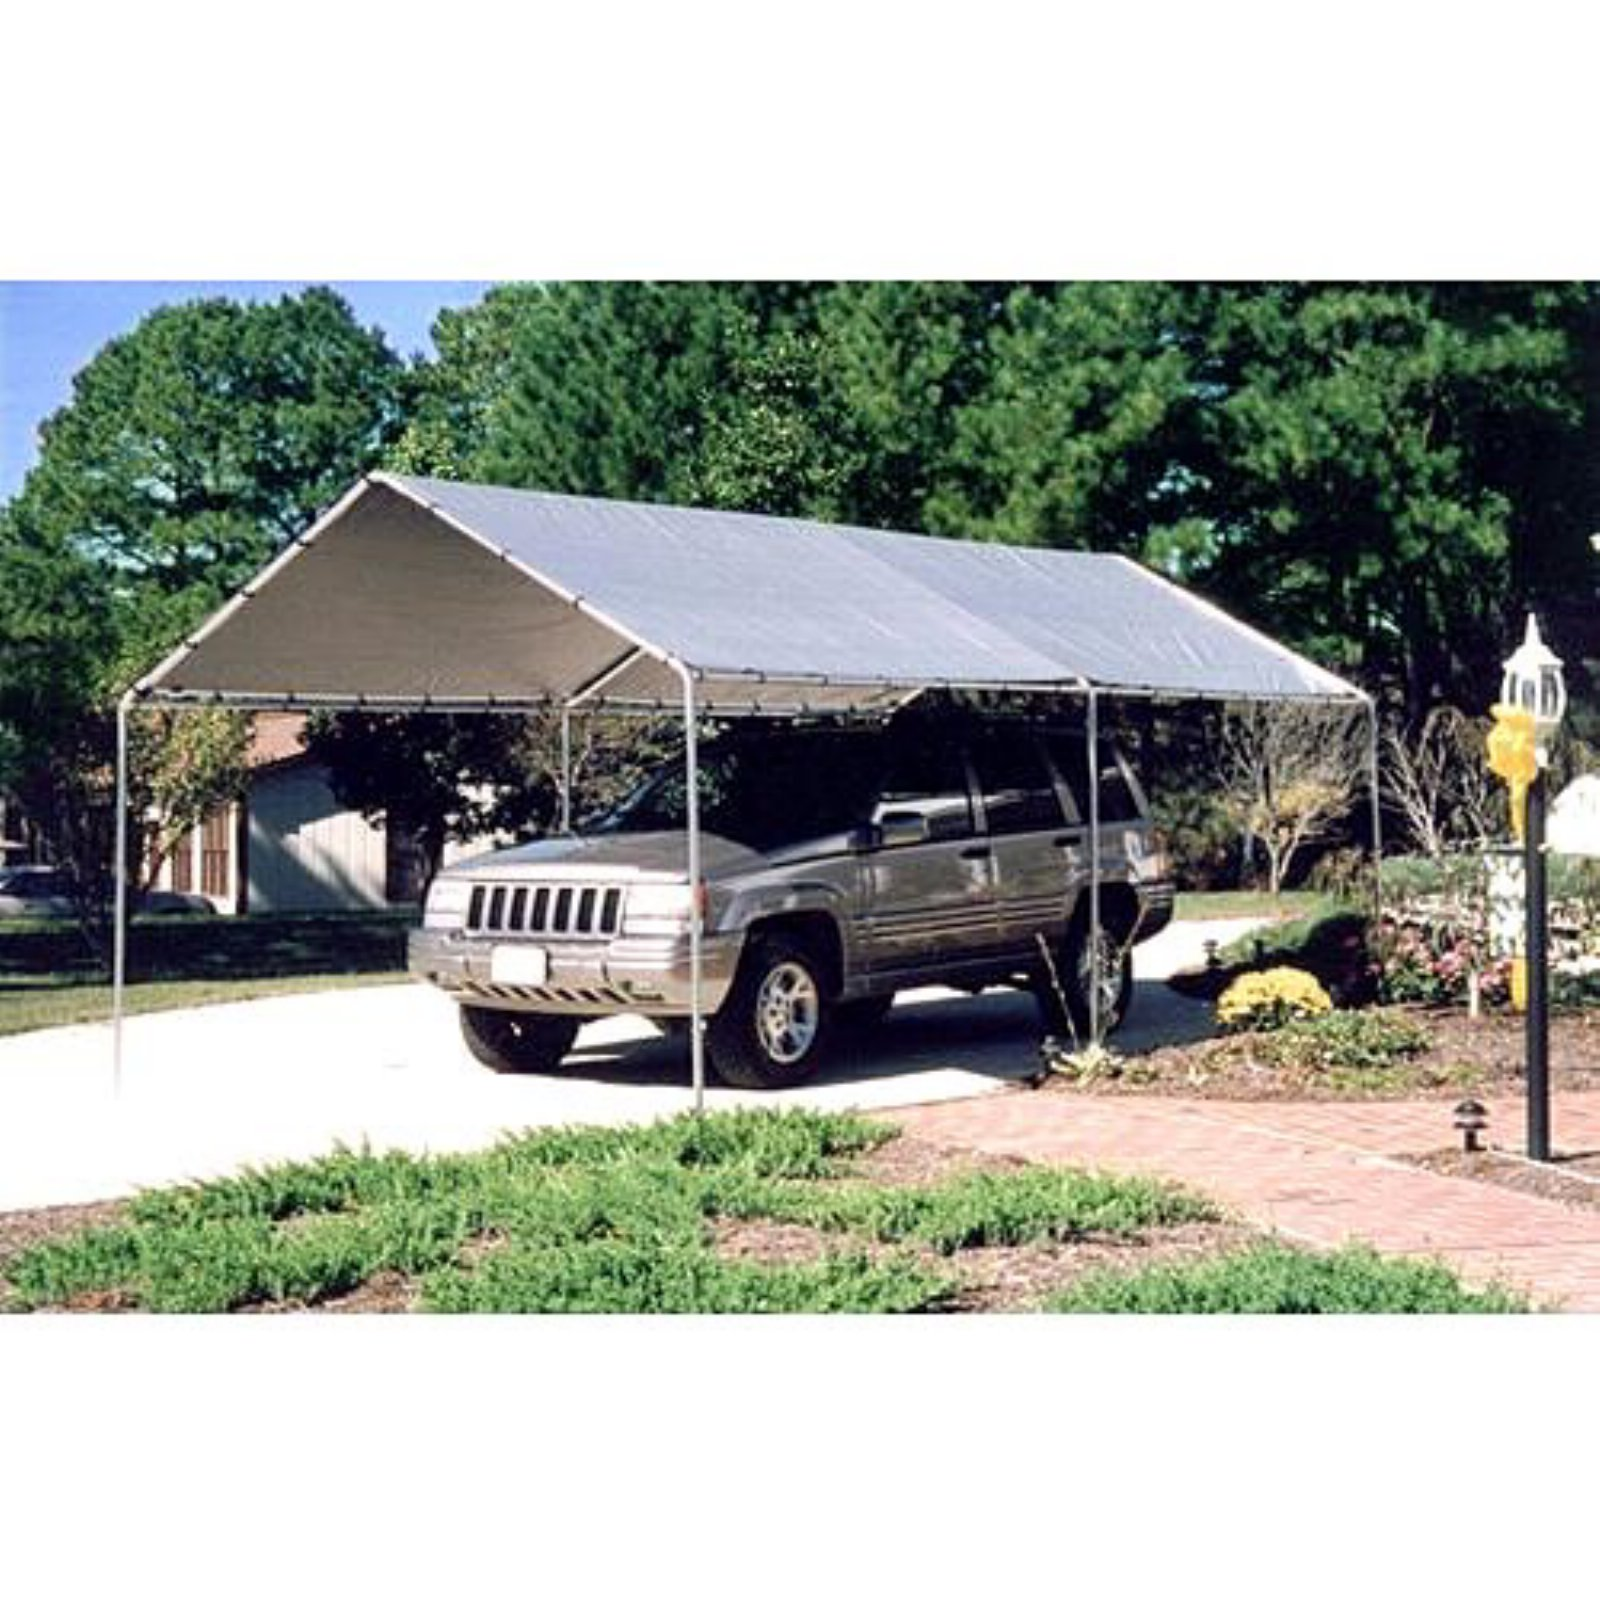 King Canopy 10 x 20 ft. Canopy Carport - 6 Legs